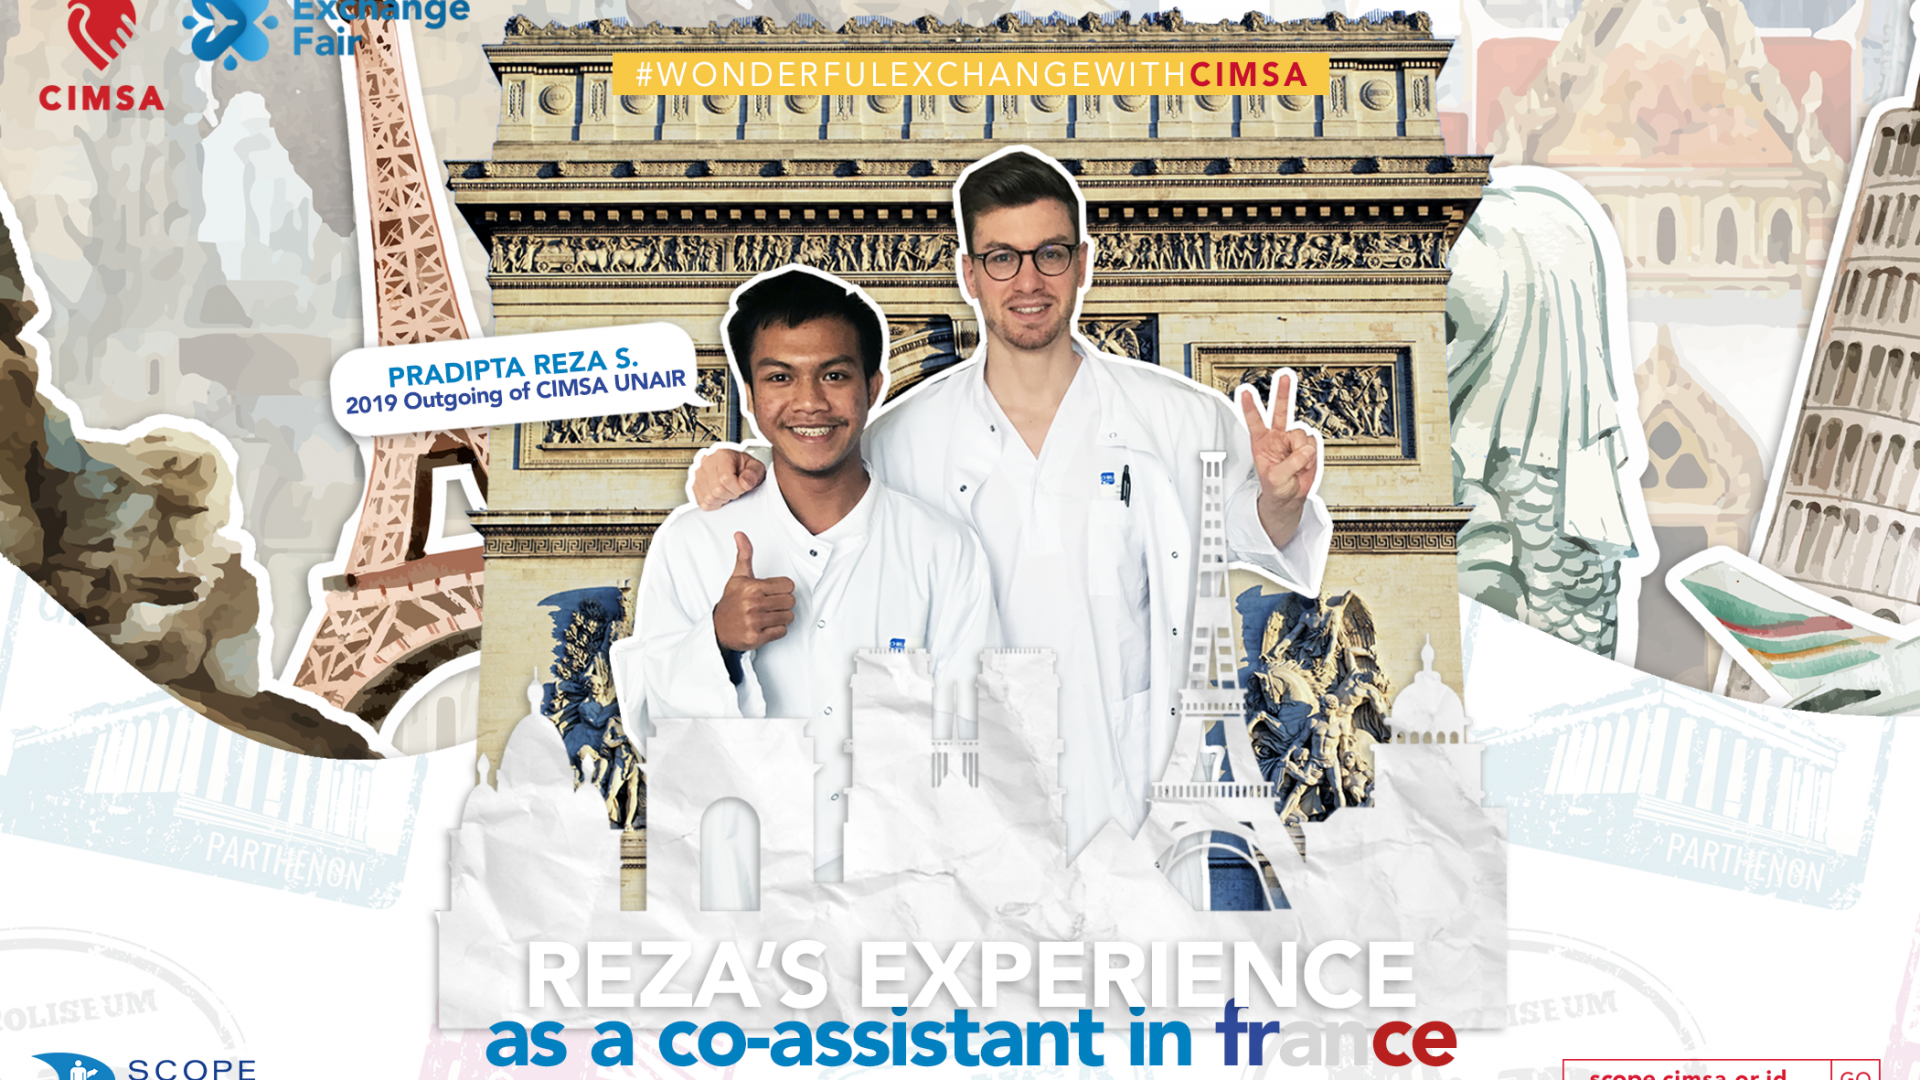 REZA'S EXPERIENCE AS A CO-ASSISTANT IN FRANCE